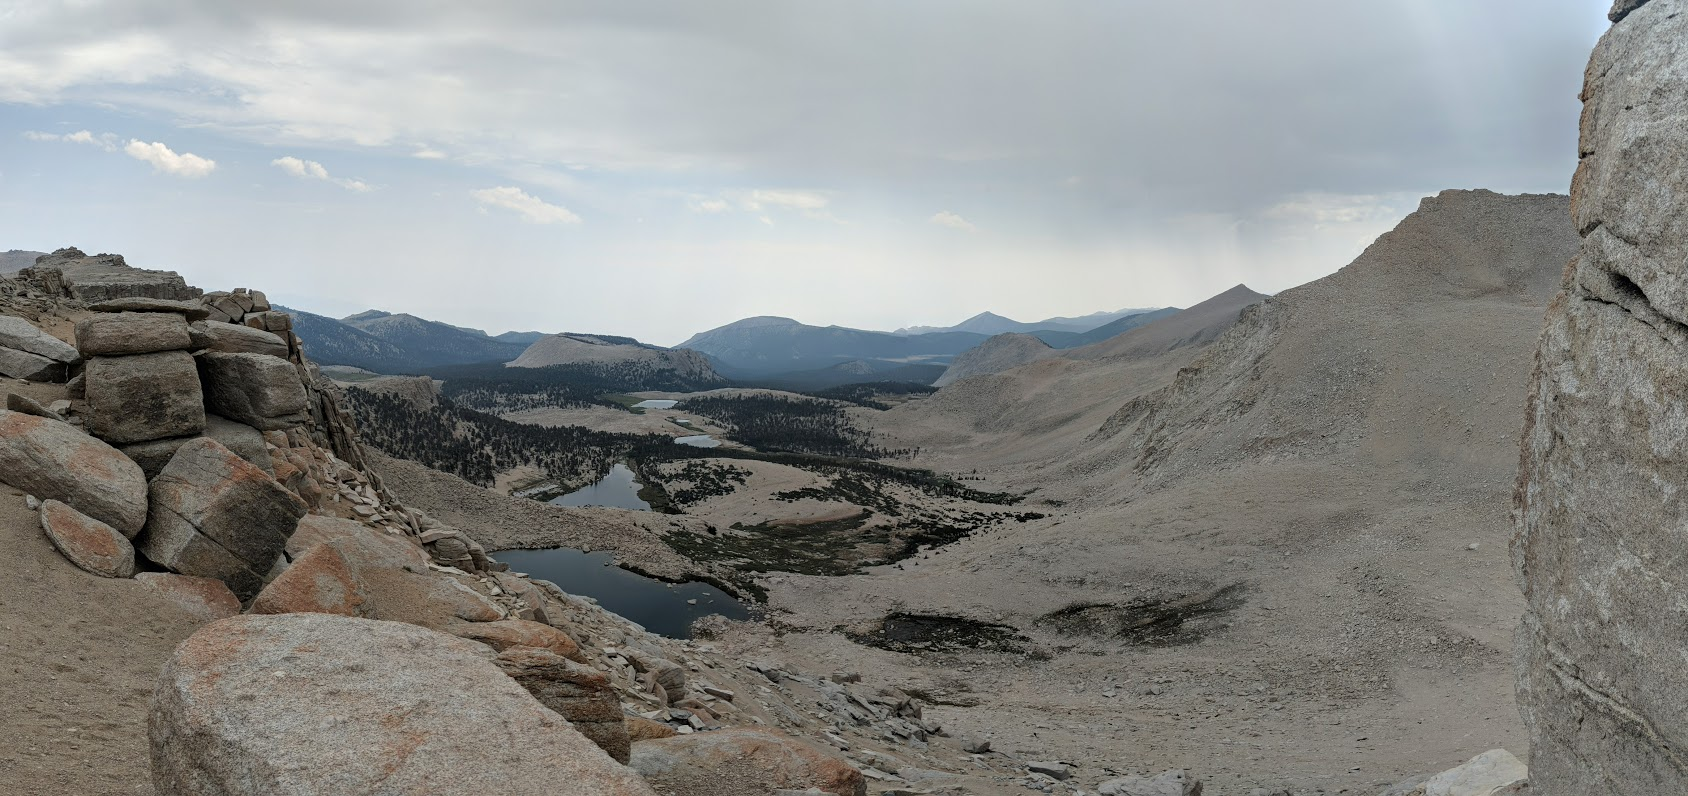 The John Muir Trail /images/jmt/new-army-pass.jpg